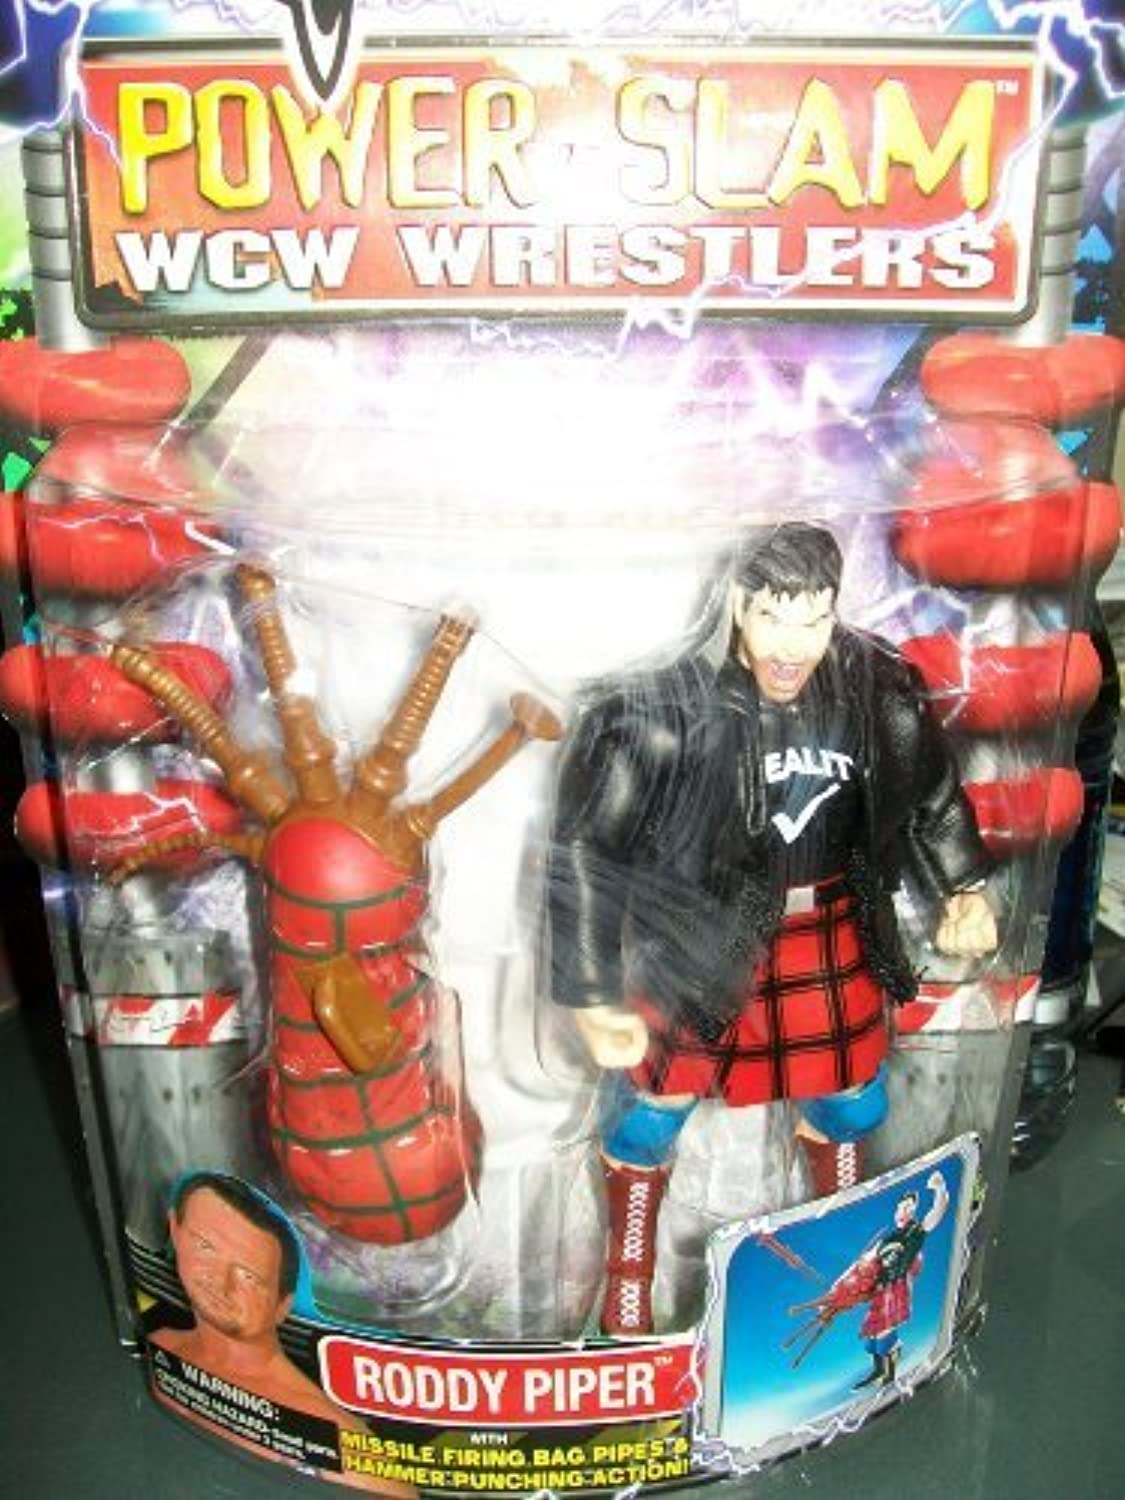 WCW Power Slam Wrestlers Roddy Piper distributed by Toy Biz 2000 by Toybiz